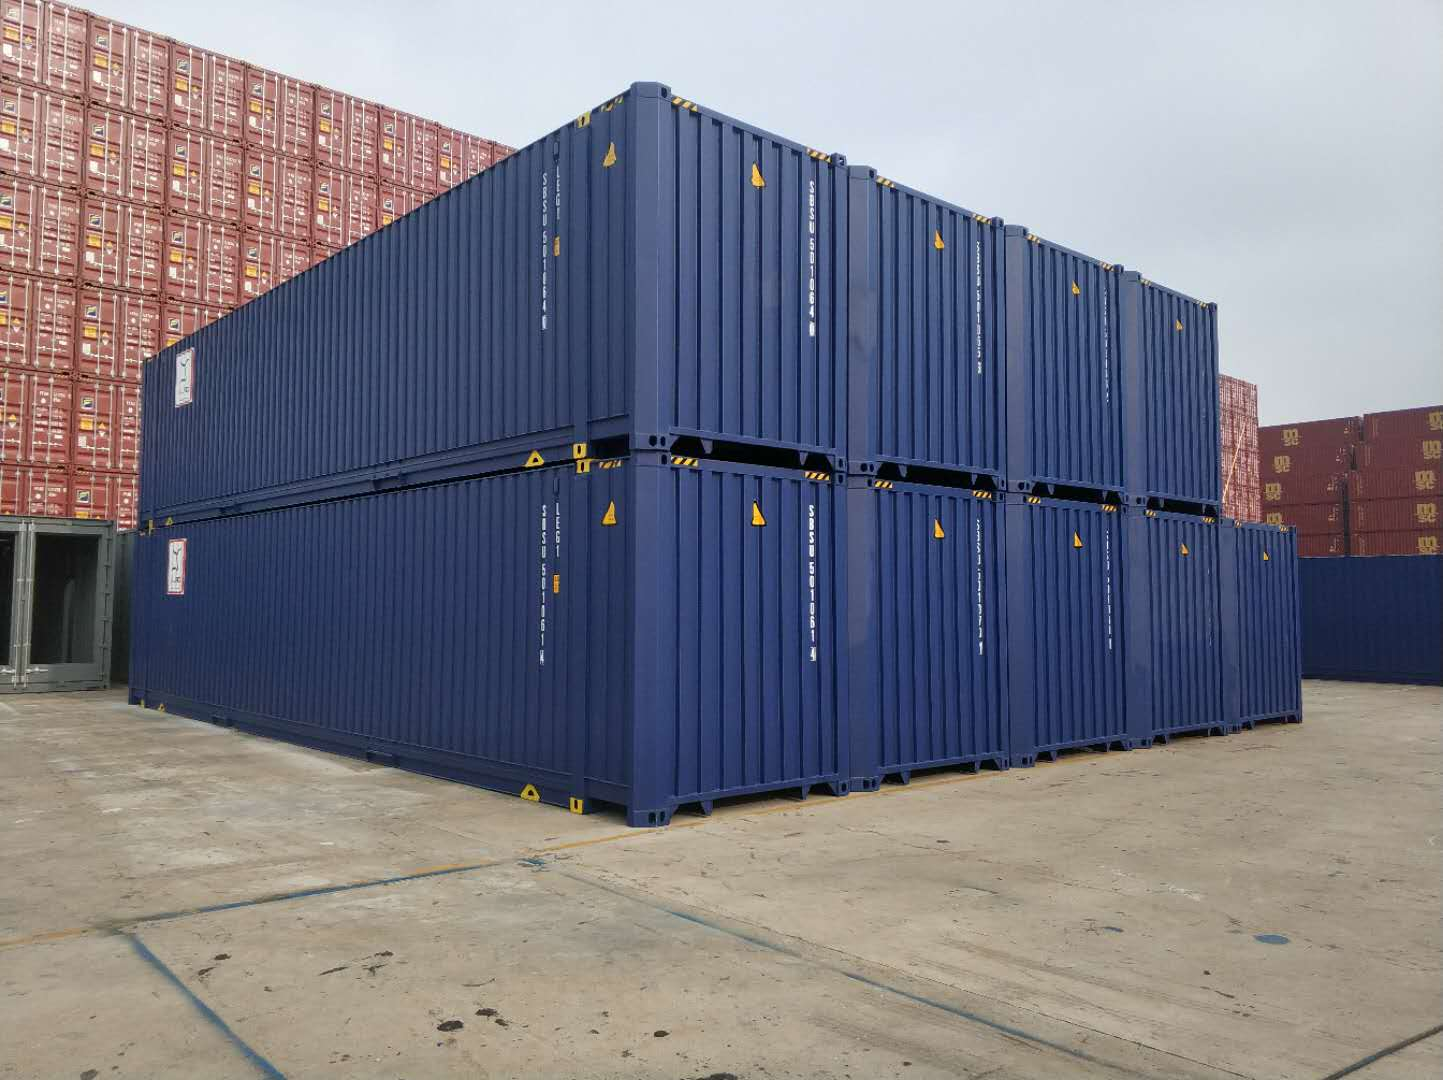 45 foot HC pallet wide - 45' HC Pallet Wide container